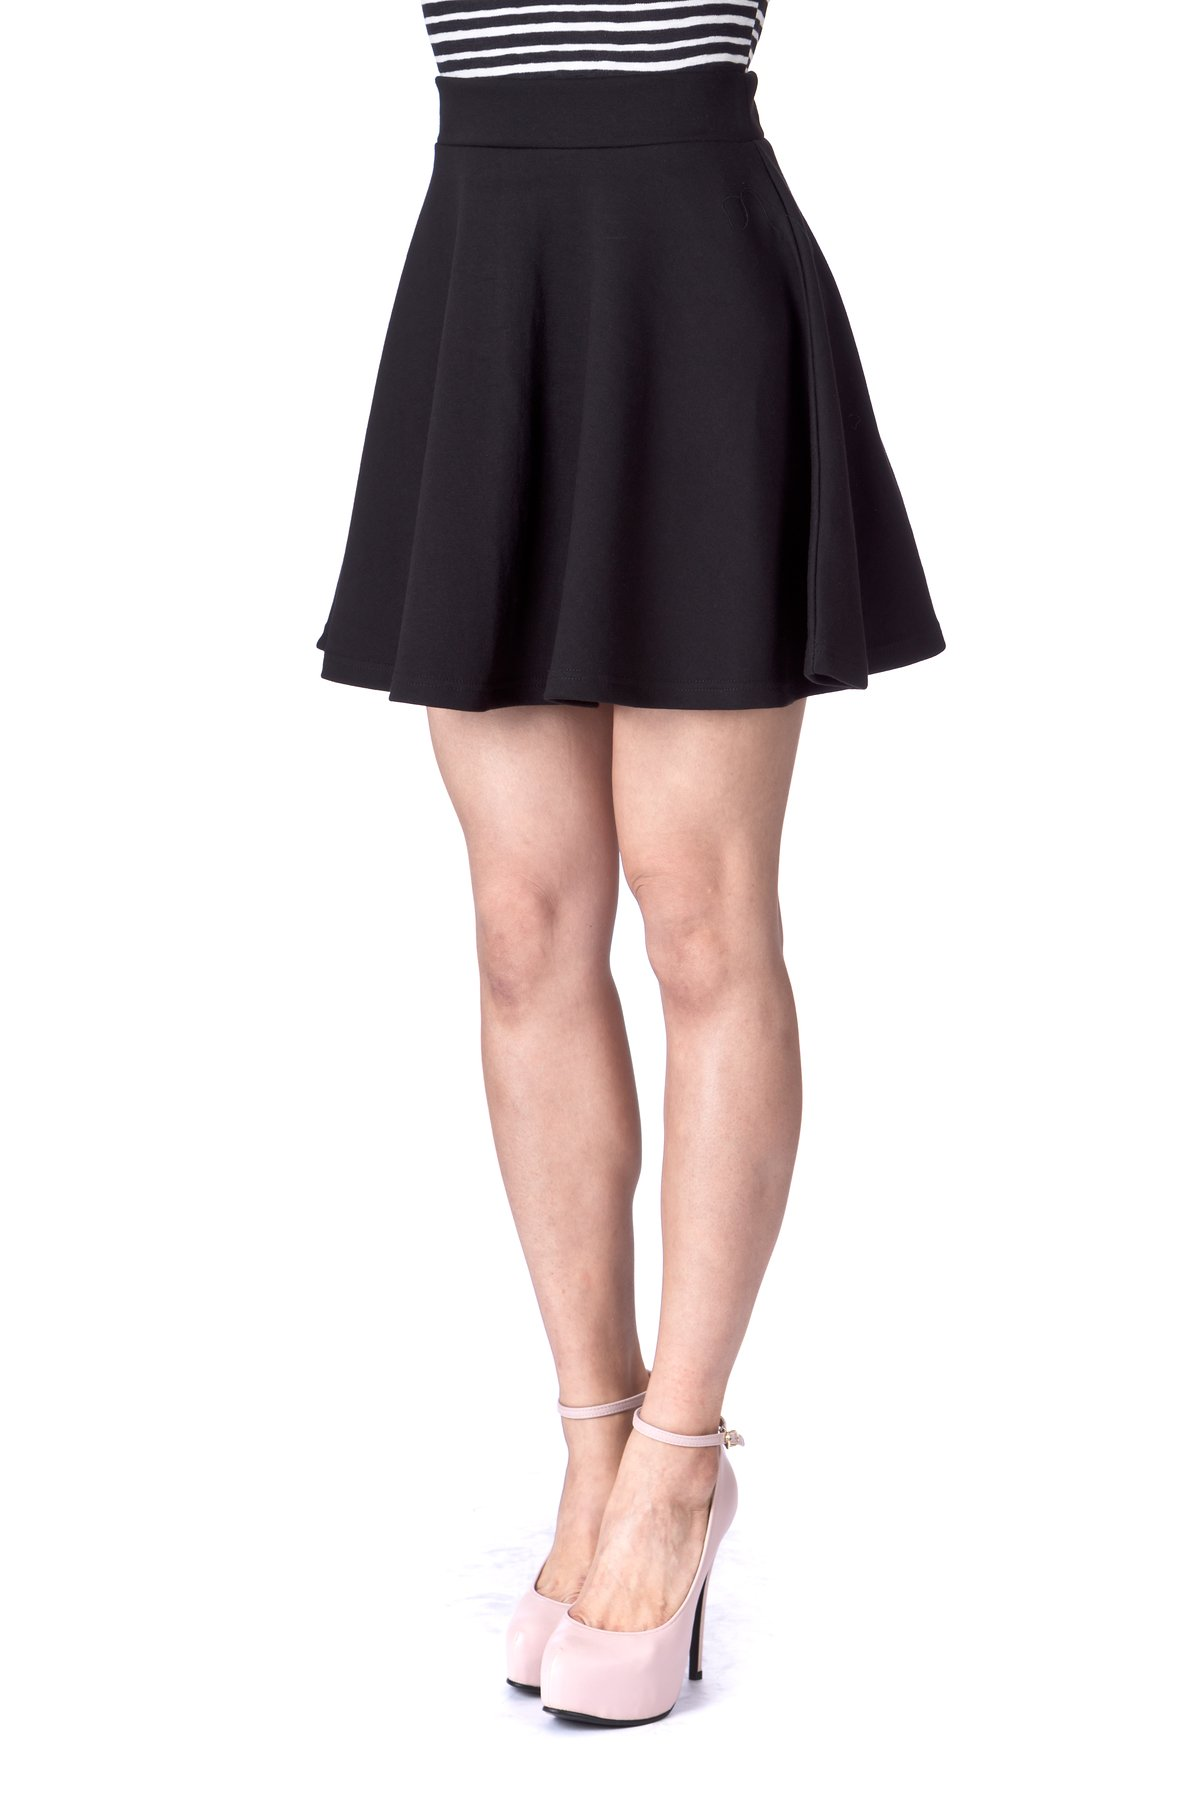 Basic Solid Stretchy Cotton High Waist A line Flared Skater Mini Skirt Black 06